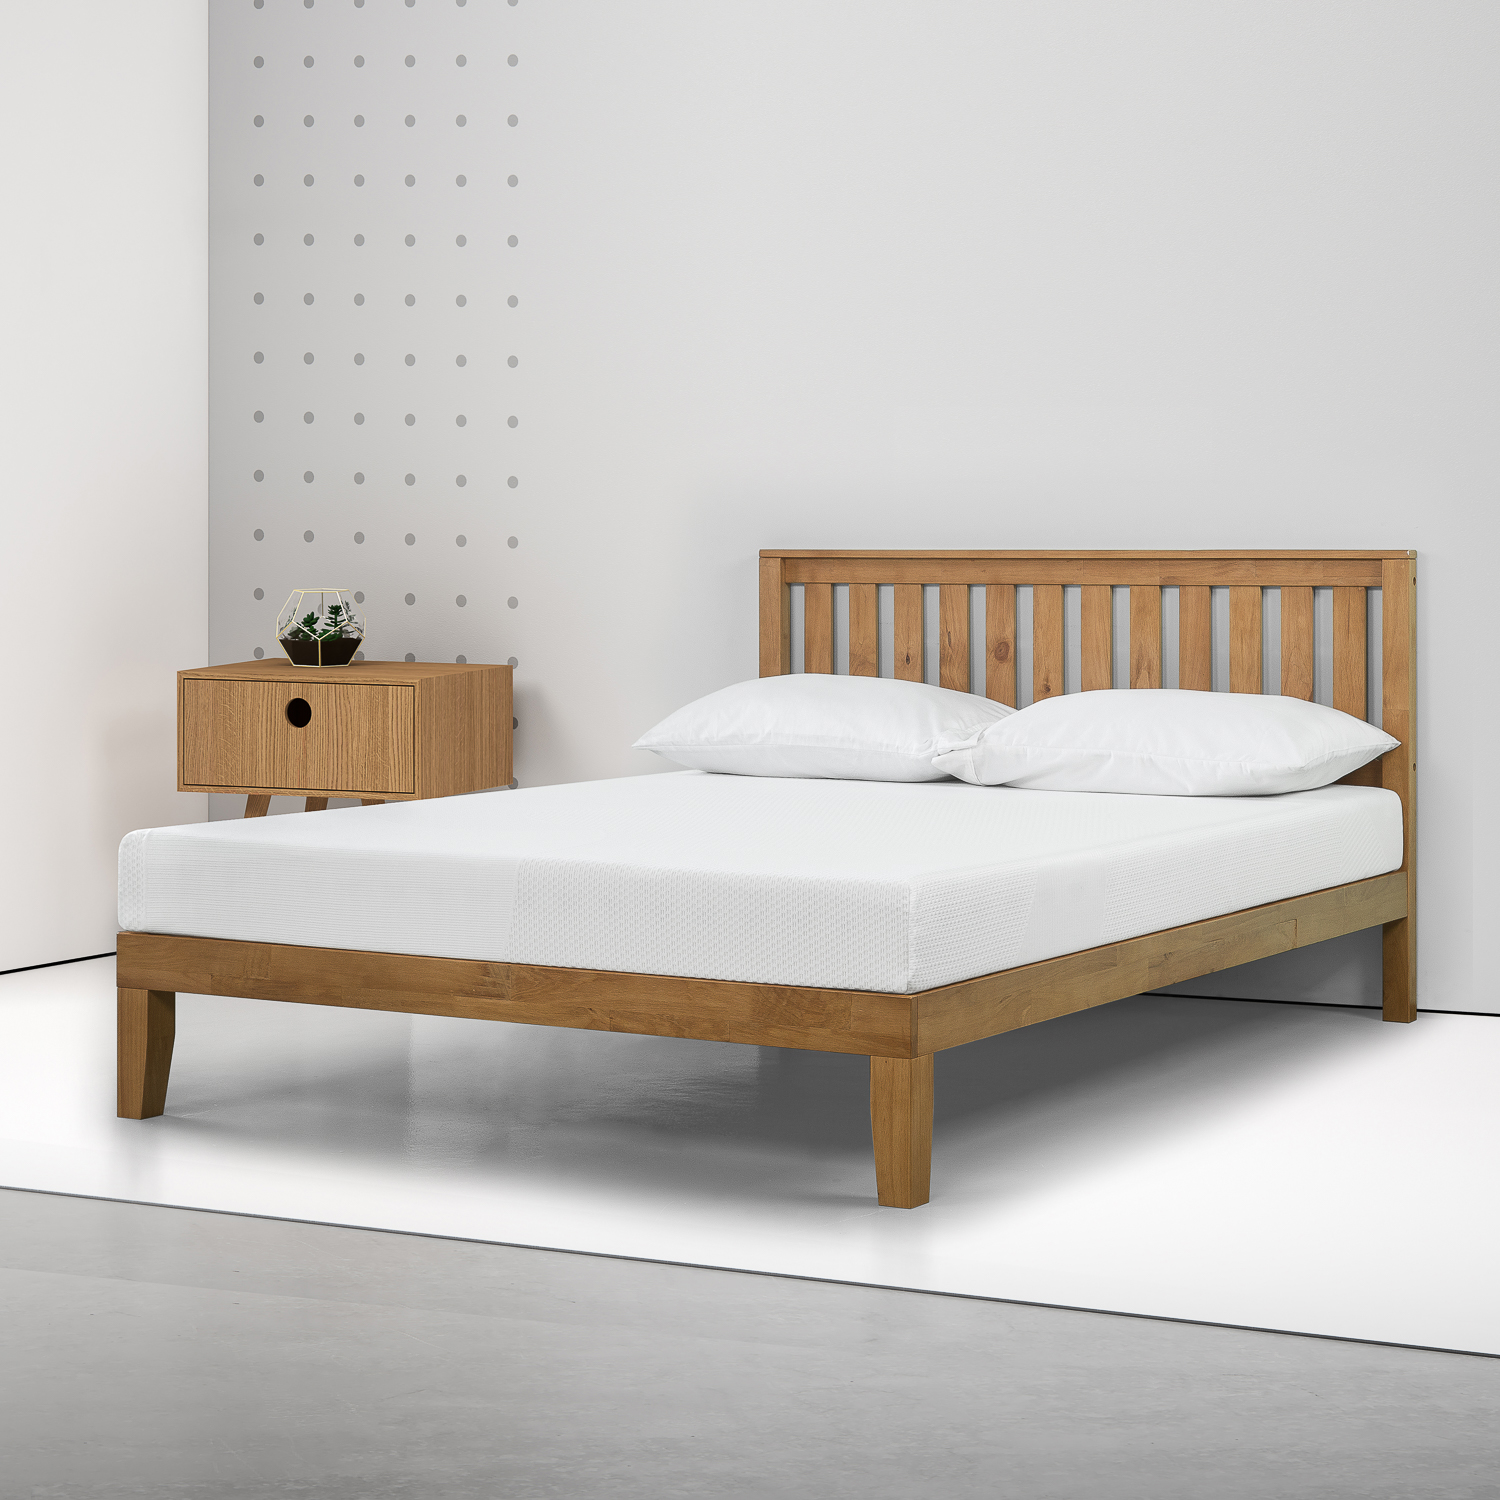 Marvelous Twin Mattress Sale Starts At 58 Walmart Com Home Interior And Landscaping Palasignezvosmurscom